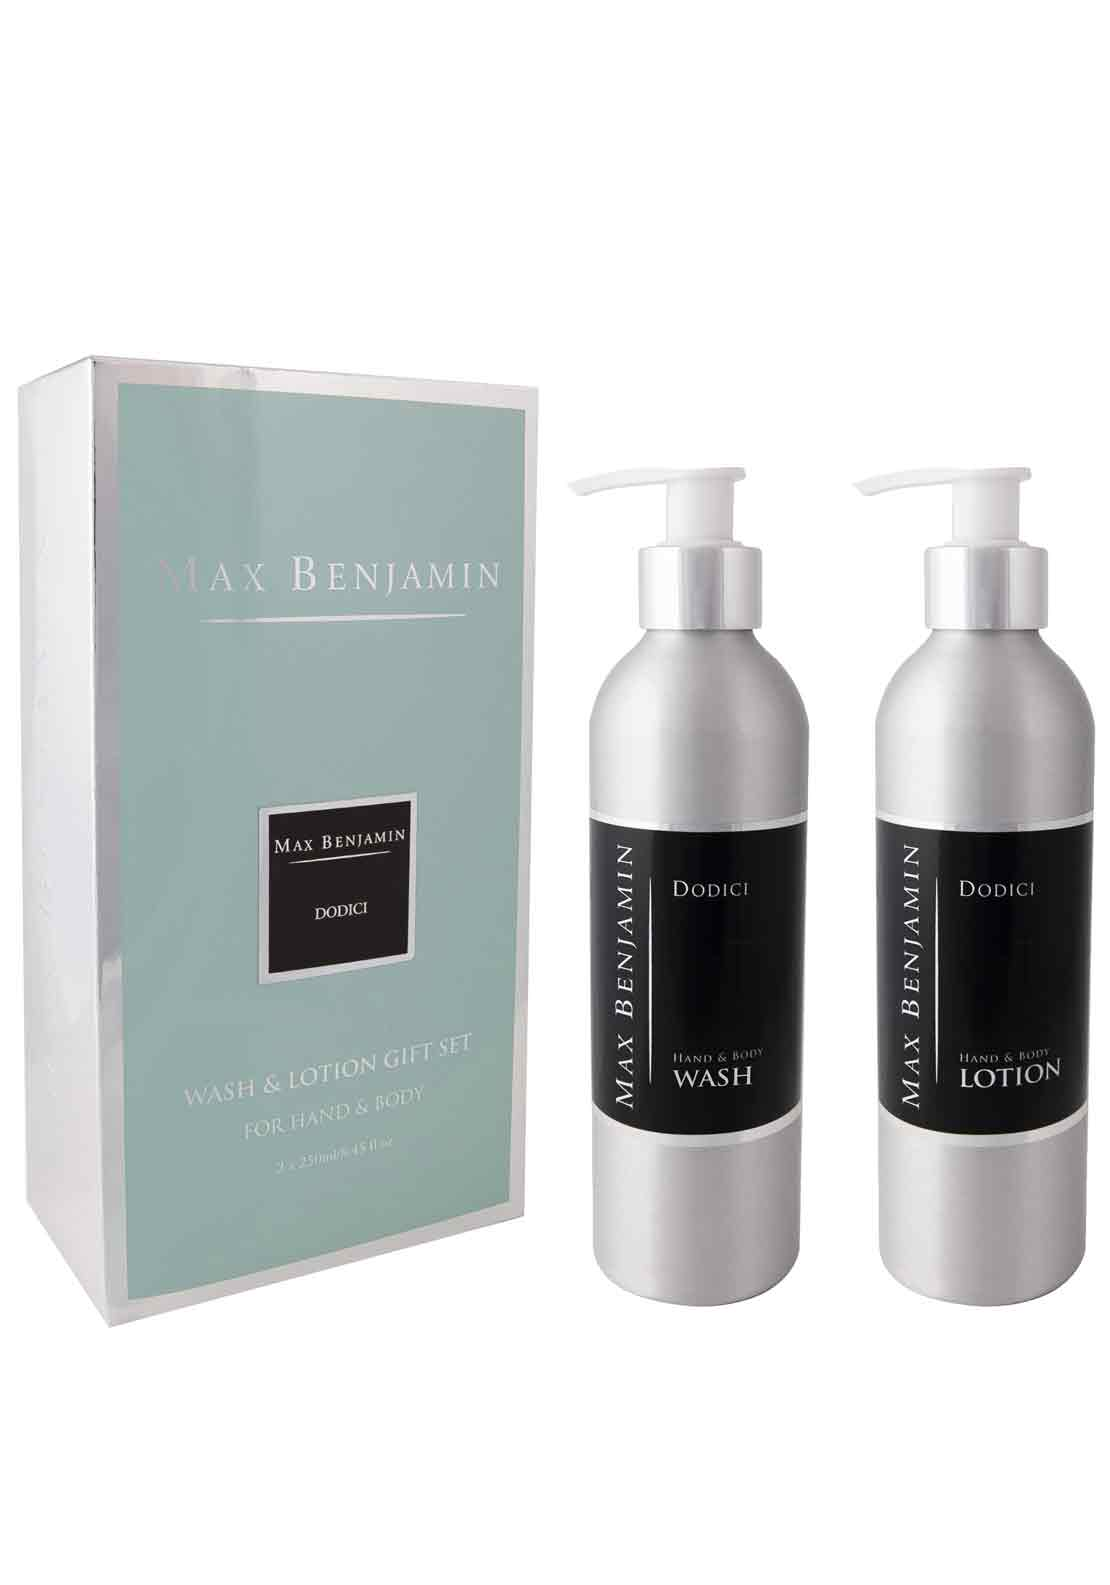 Max Benjamin Dodici Hand & Body Wash & Lotion Gift Set